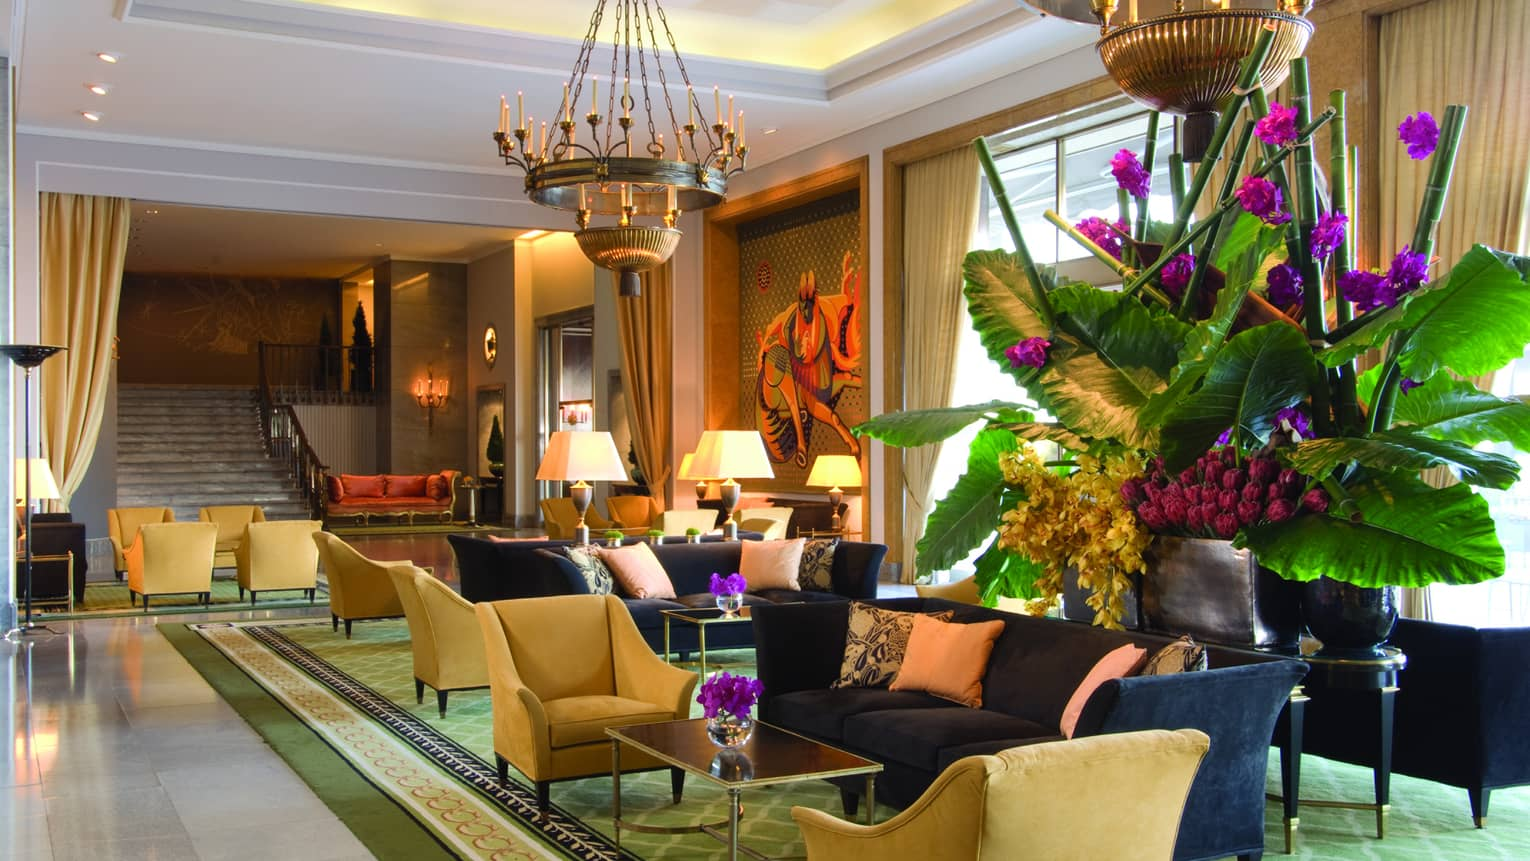 Sunny hotel lobby with blue sofas, yellow armchairs, large tropical plant with purple flowers